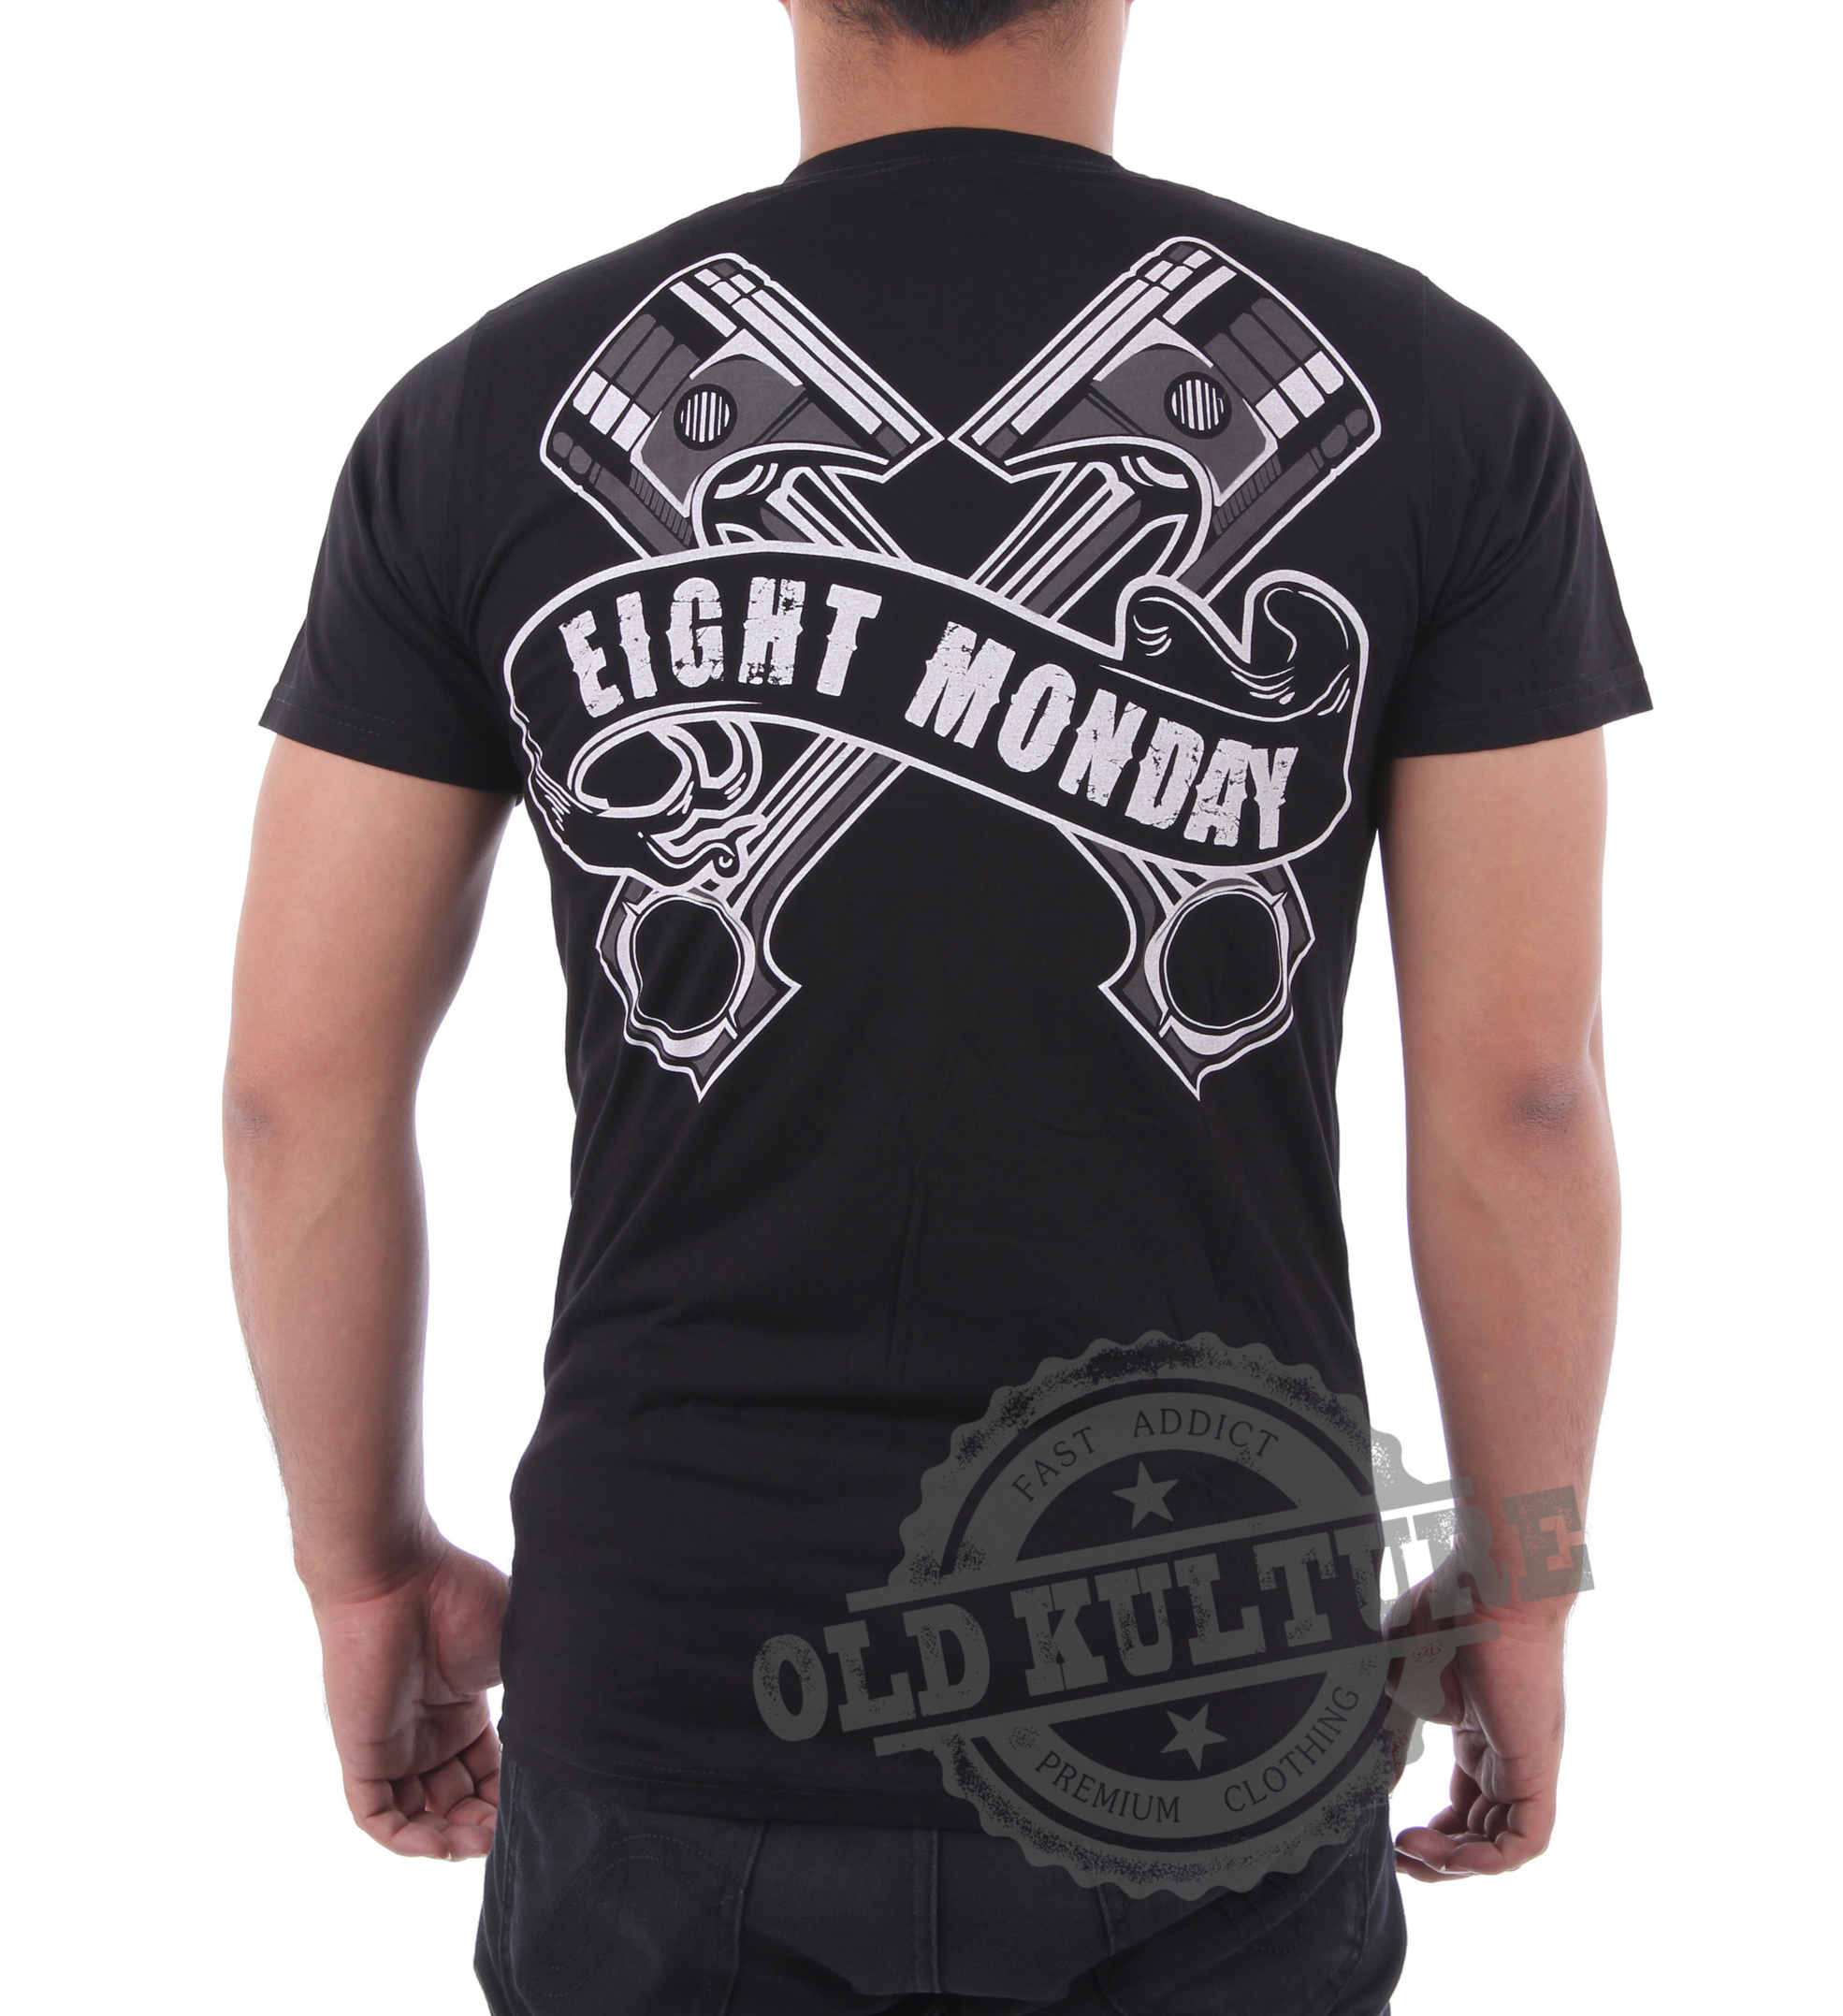 eight_monday_rockabilly_rock_n_roll_mens_shirt_hot_rod_piston_cars_em09_t_shirts_5.jpg